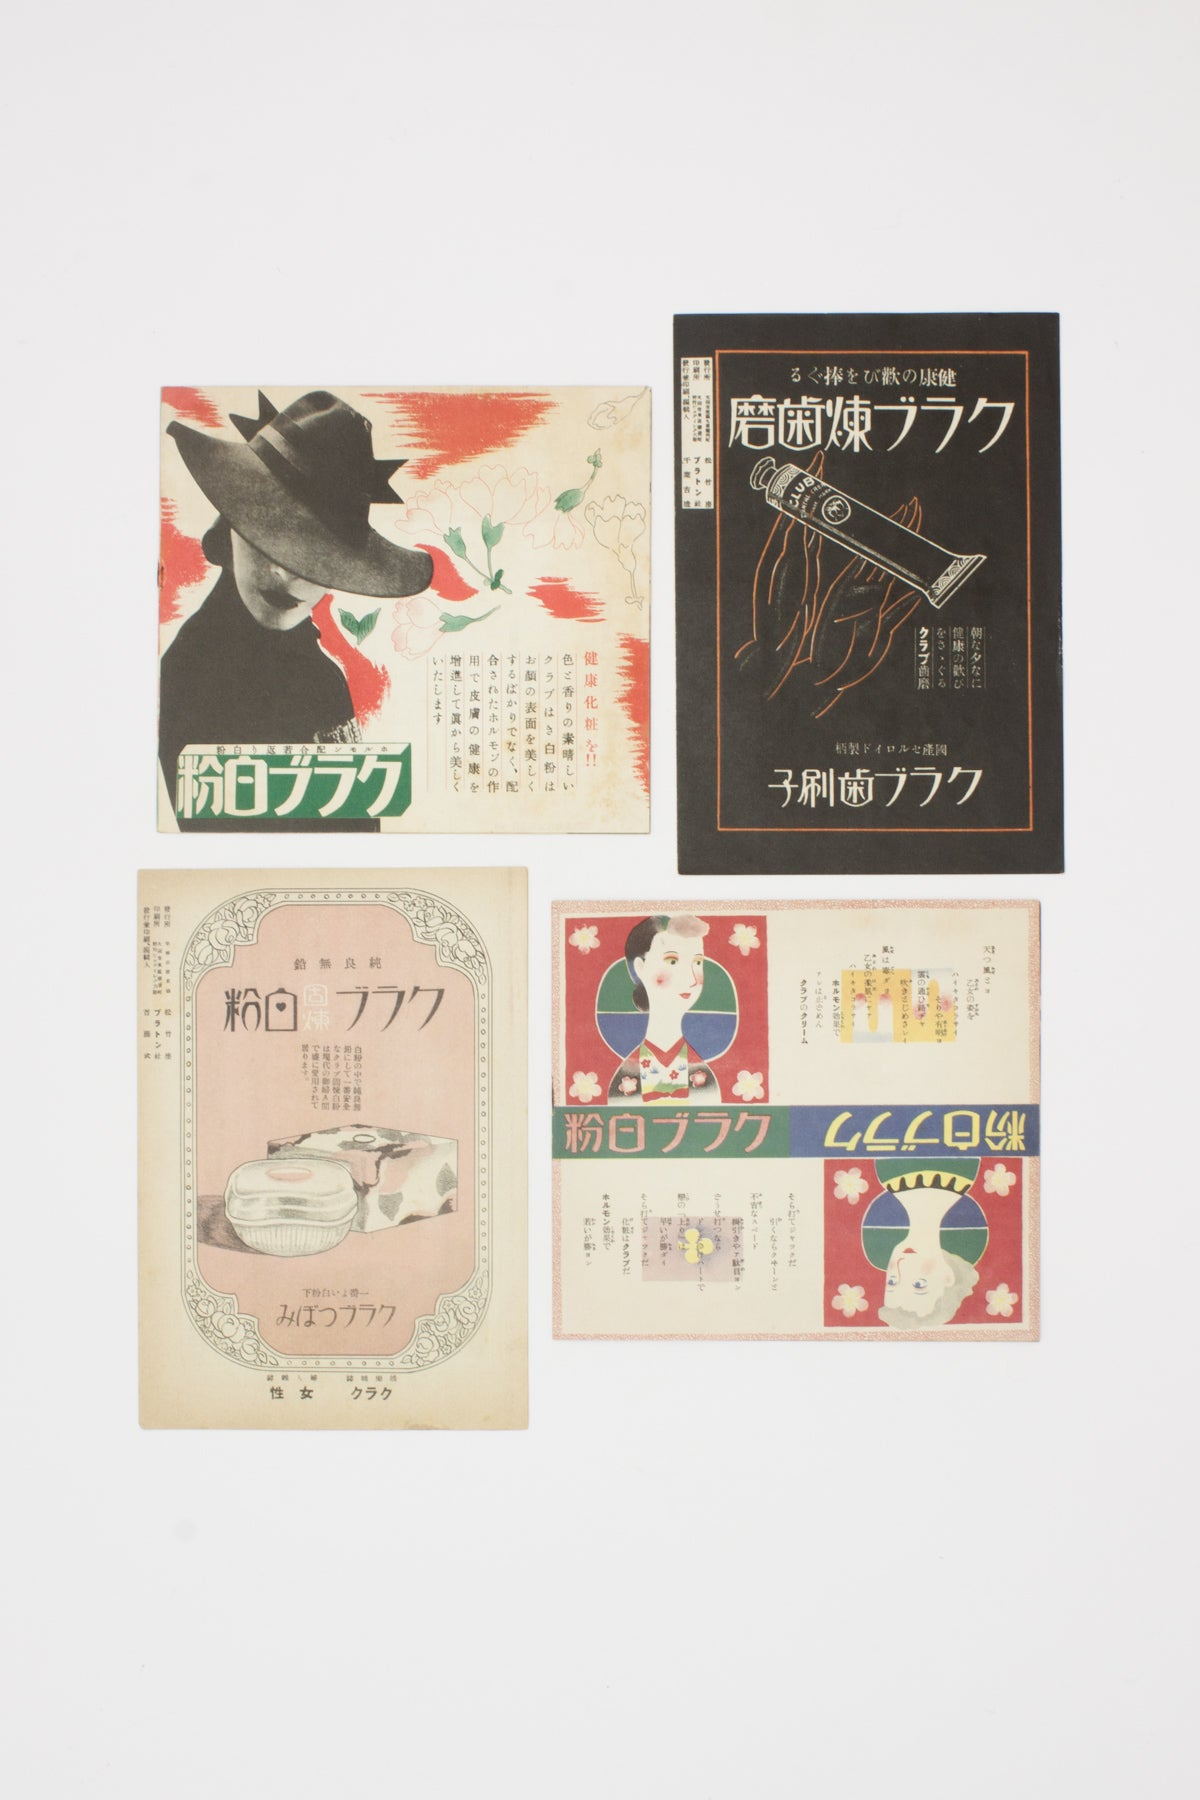 [A small collection of Japanese theatre and cinema ephemera].